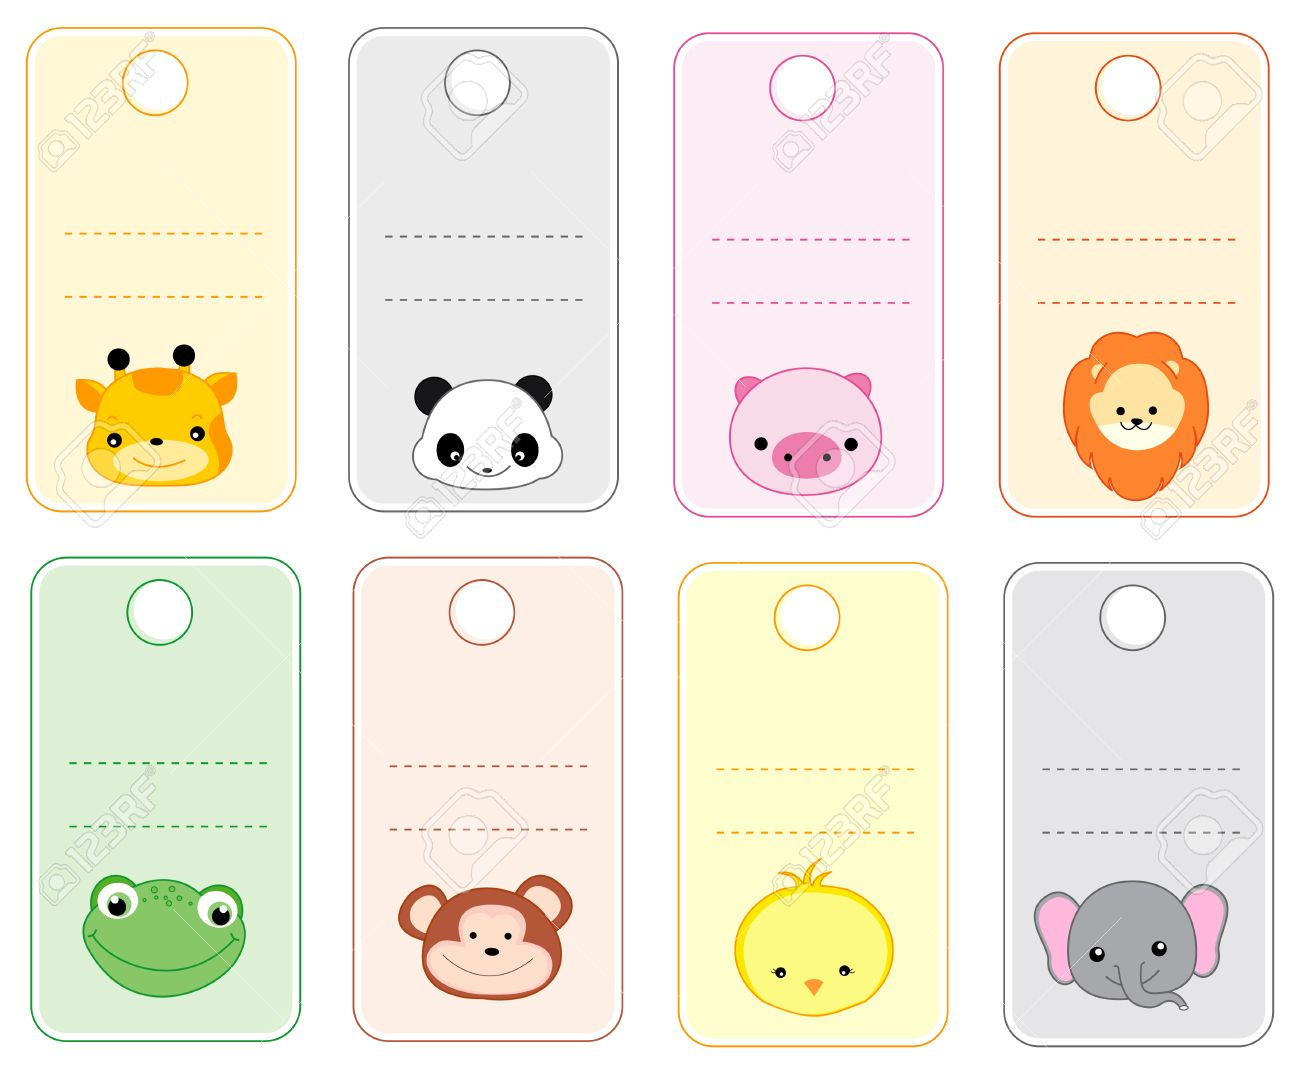 Colorful Printable Gift Tags / Name Tags With Cute Animal Faces - Free Printable Gift Name Tags